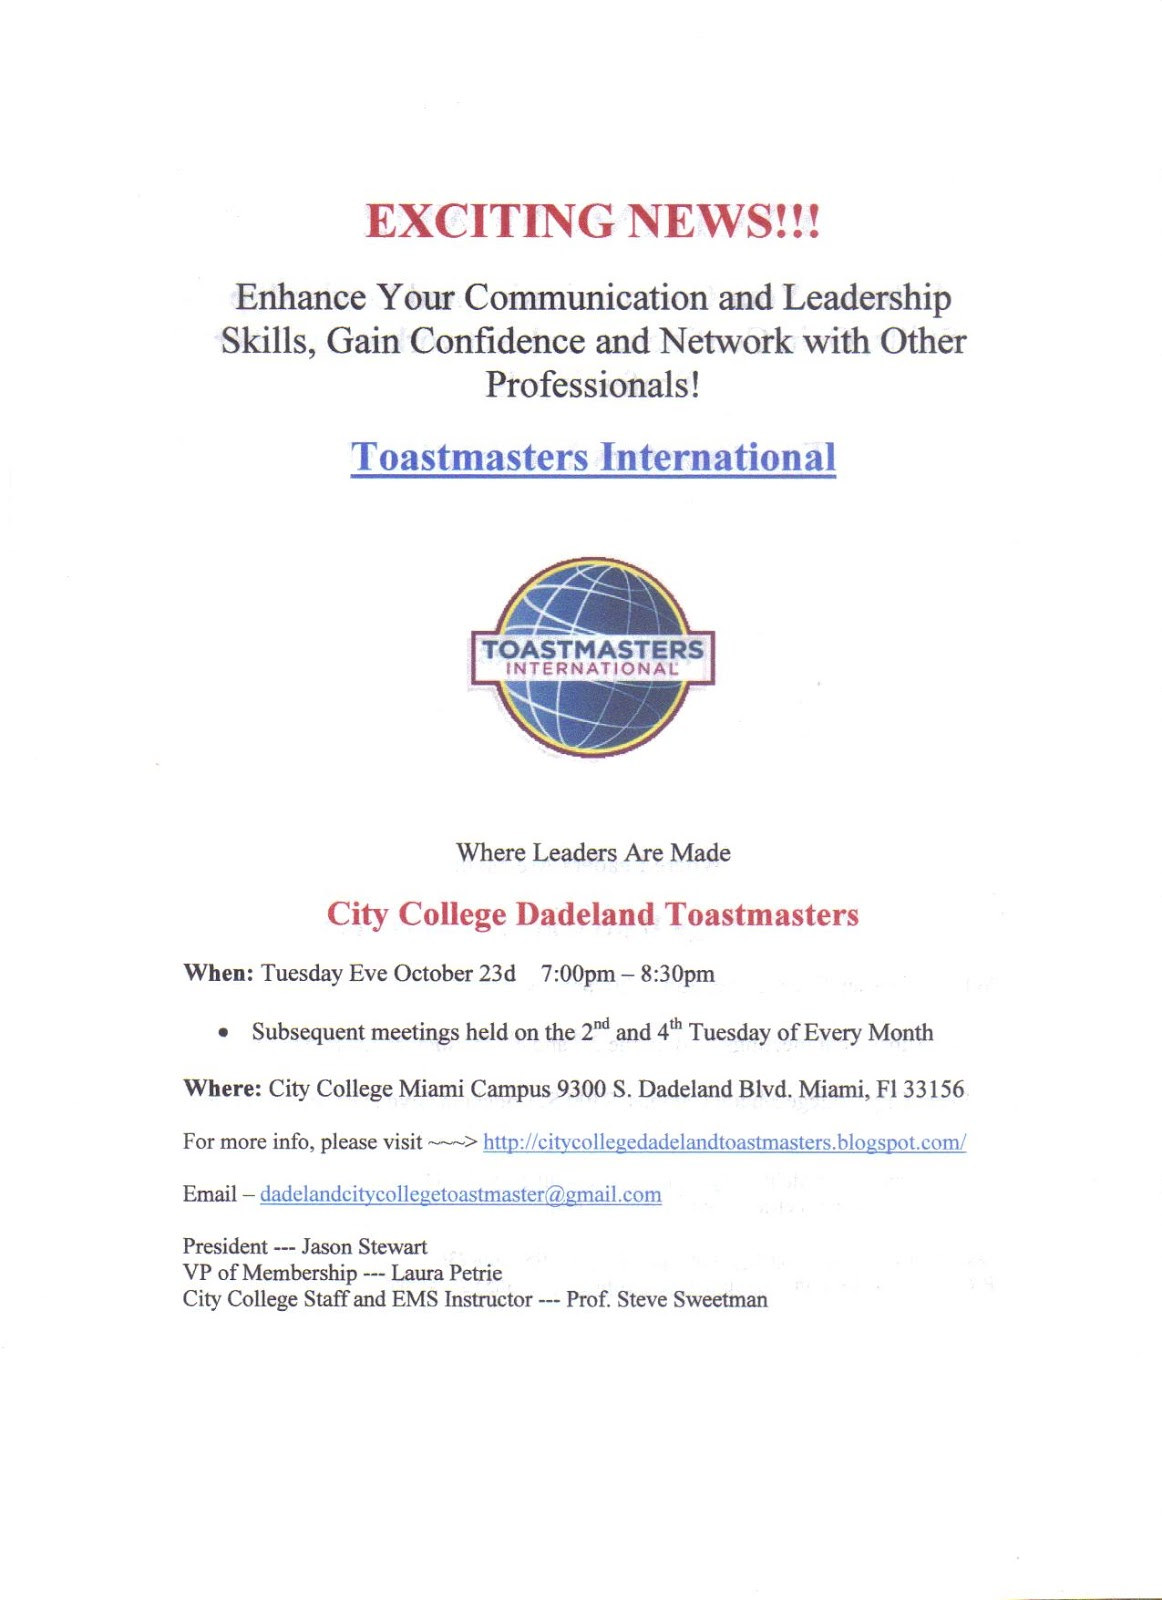 city college dadeland toastmasters email this club dadelandcitycollegetoastmaster gmail com